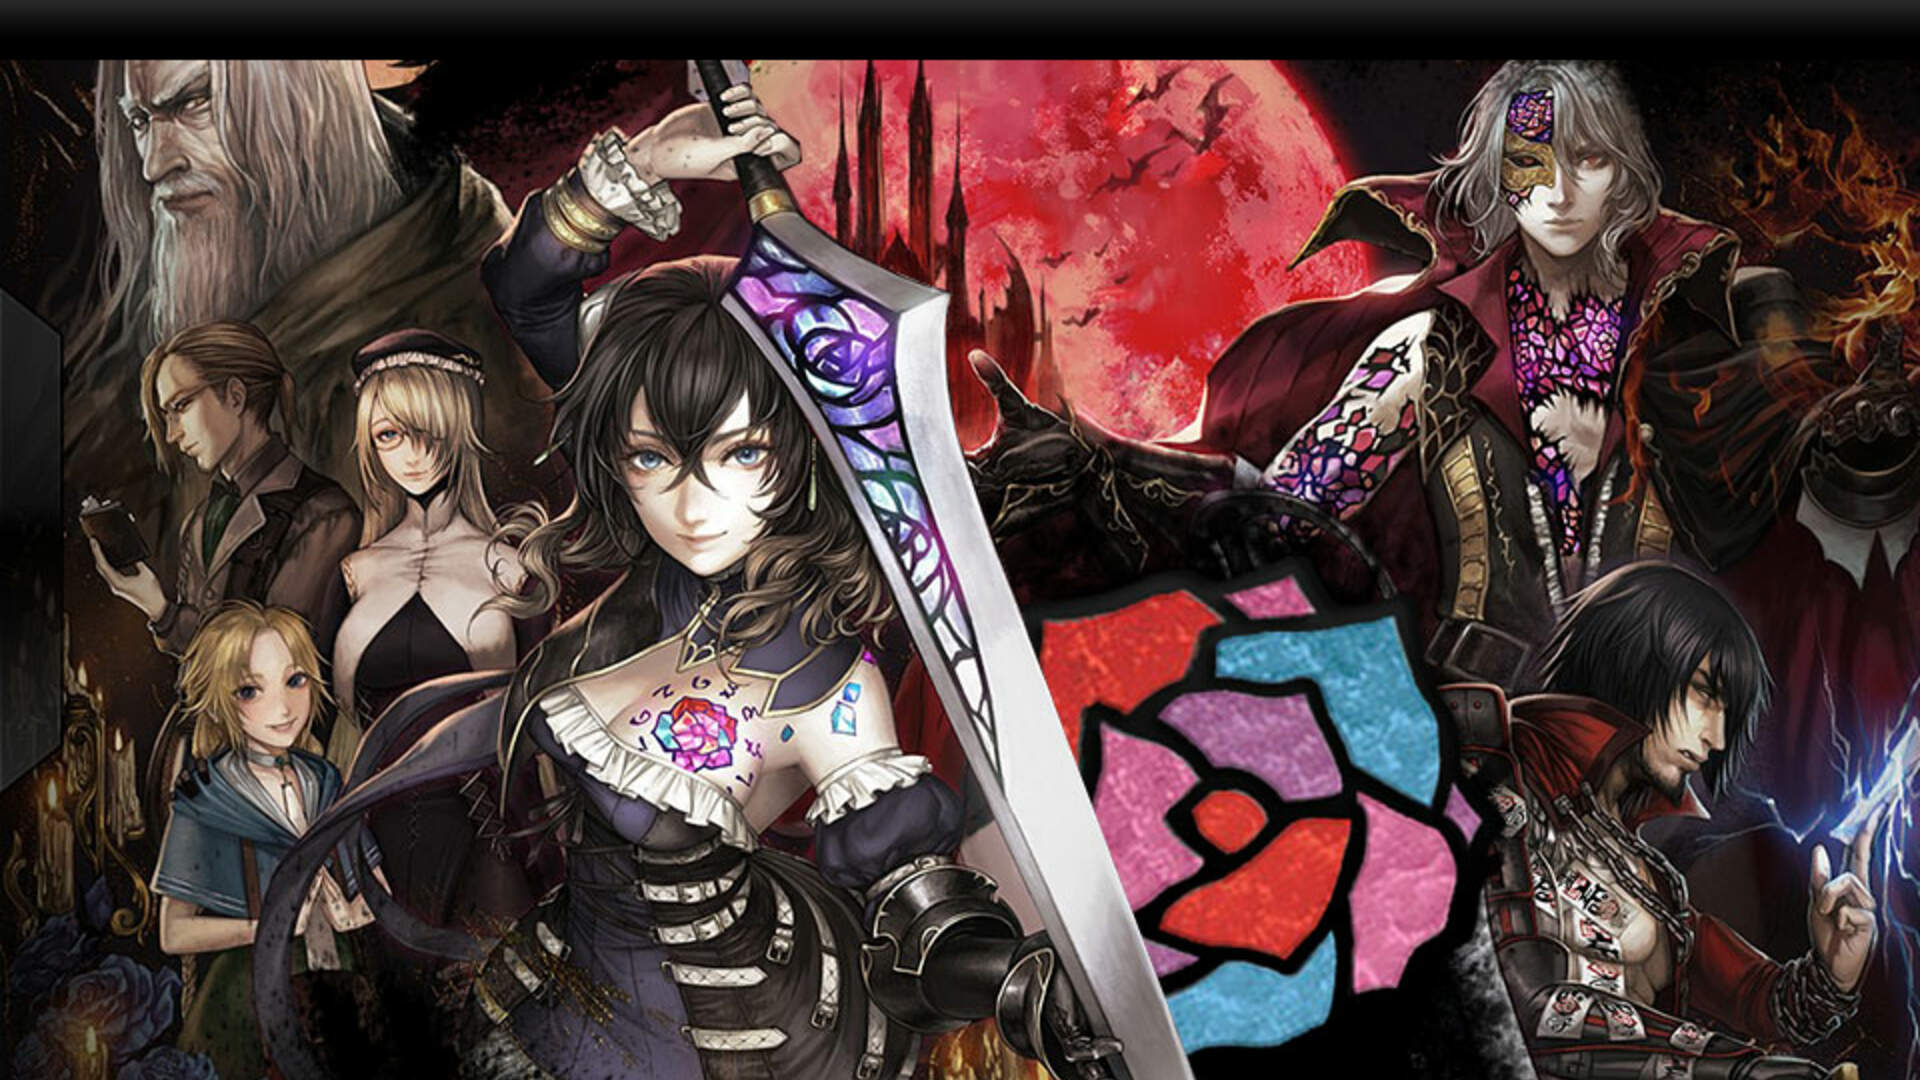 Despite Issues on Switch, Bloodstained: Ritual of the Night Otherwise Runs Smooth on PC